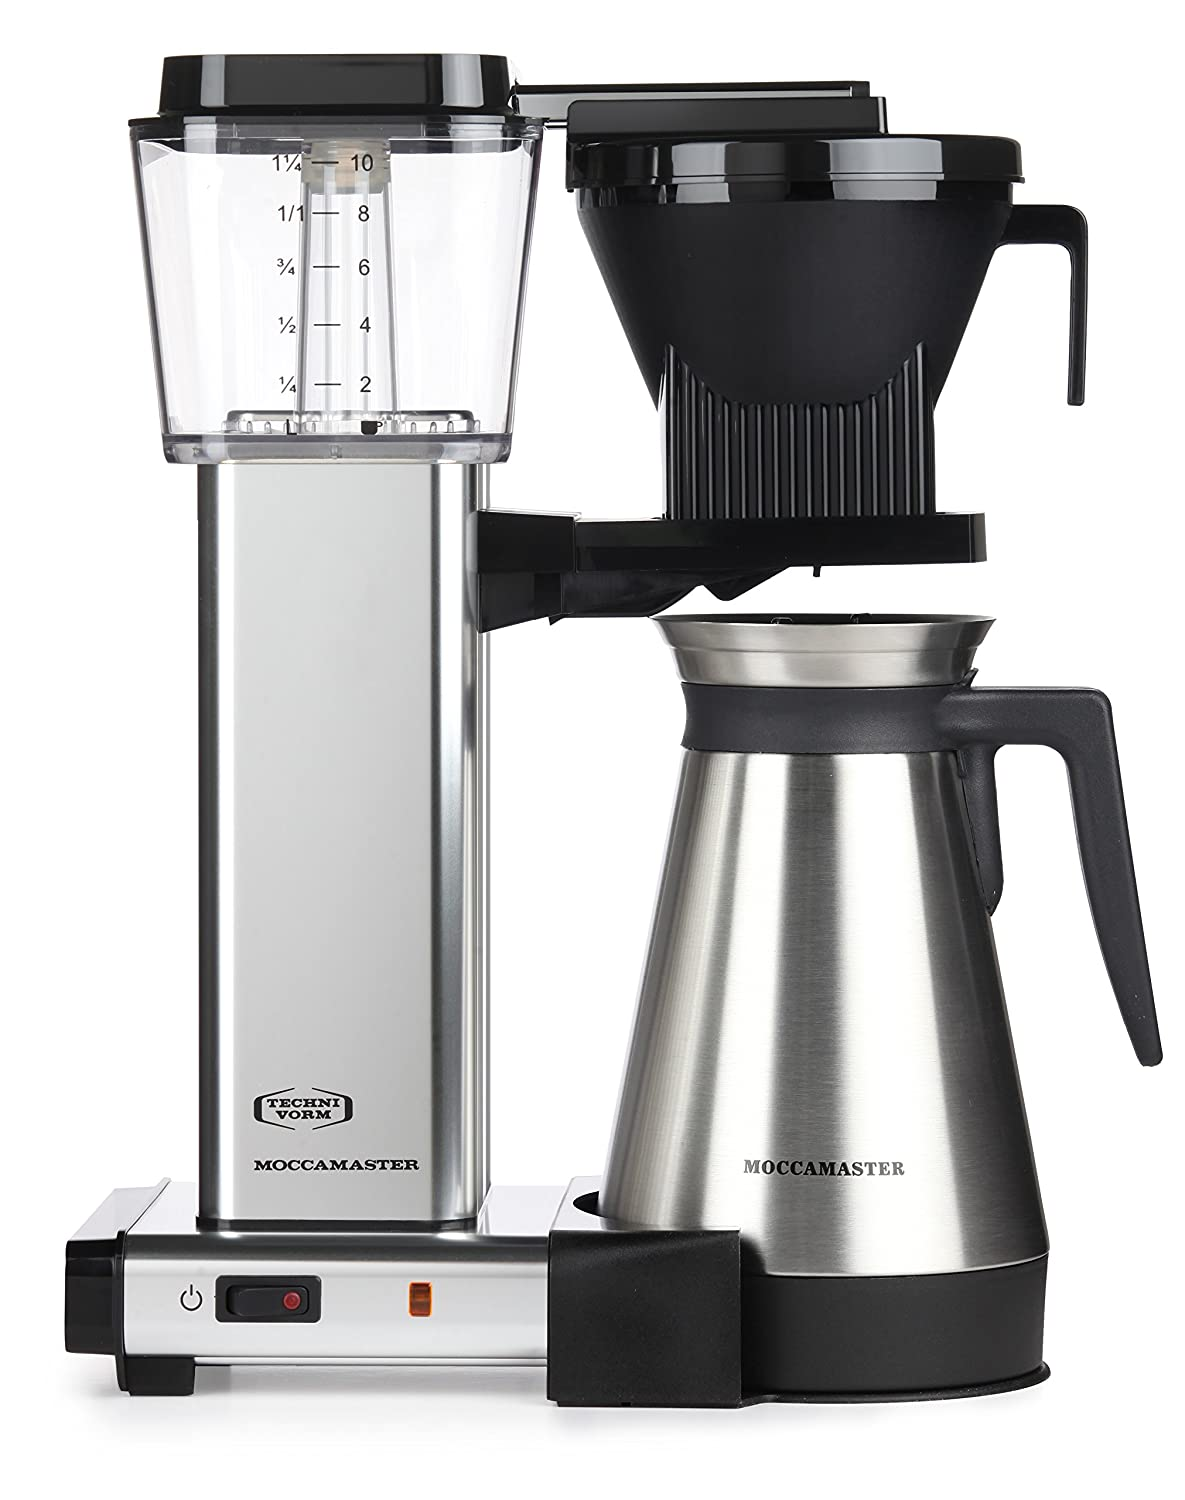 Scaa Certified Coffee Makers Best Tasting Coffee Makers